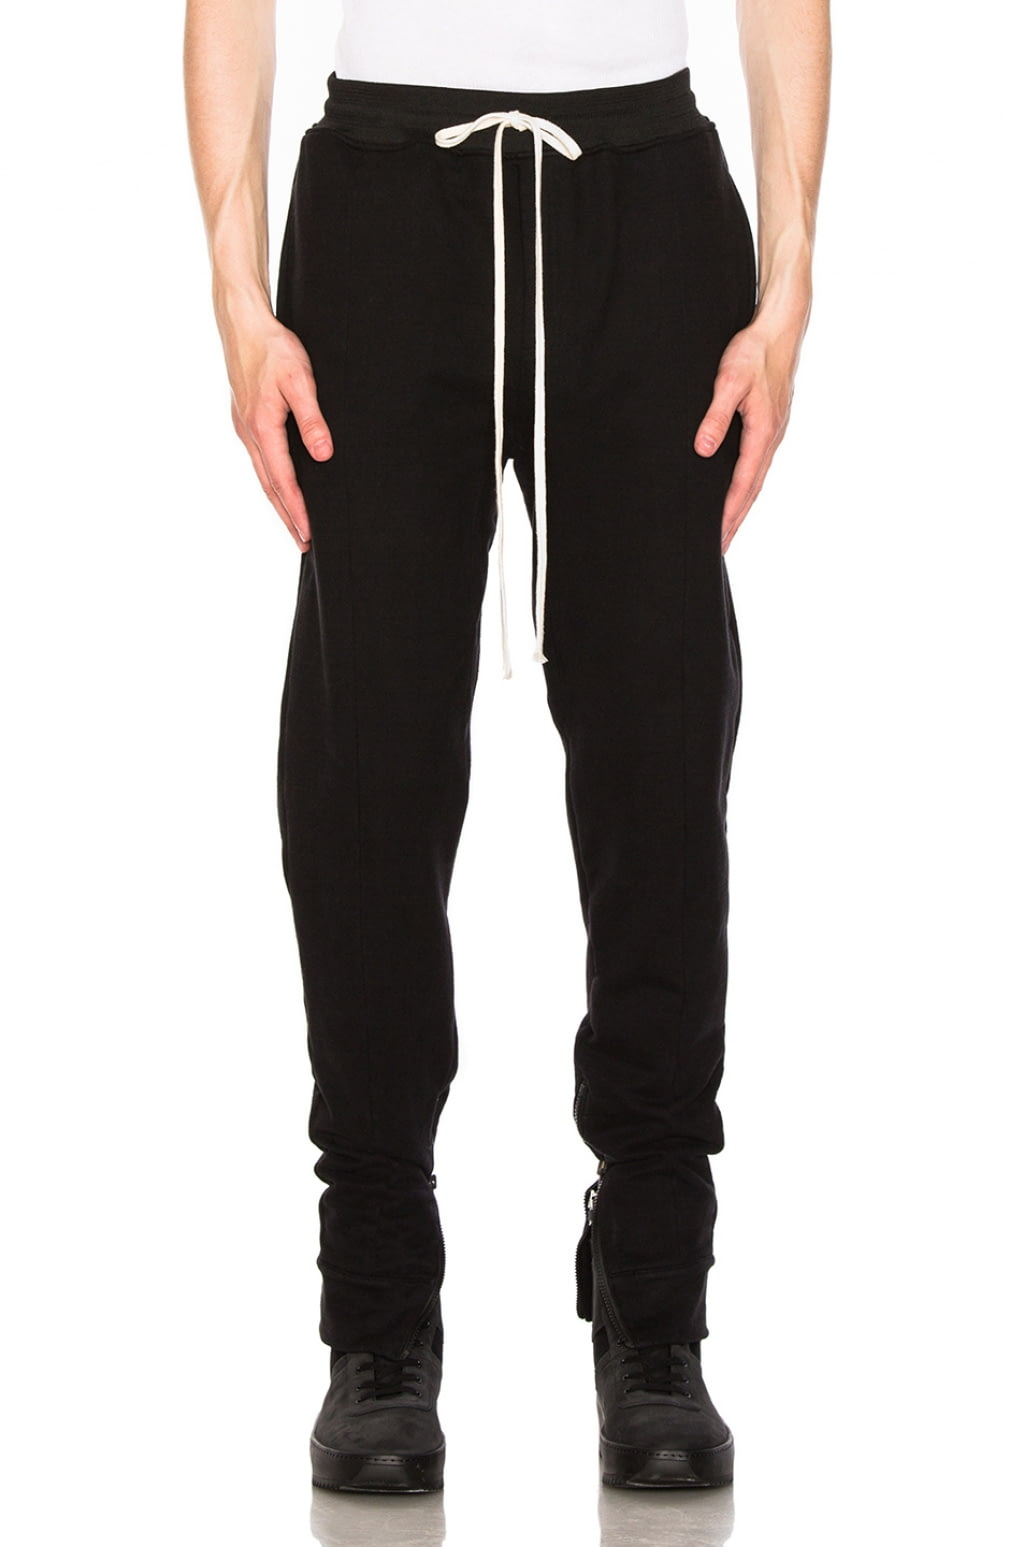 Buy Original Fear Of God Heavy Terry Sweatpants At